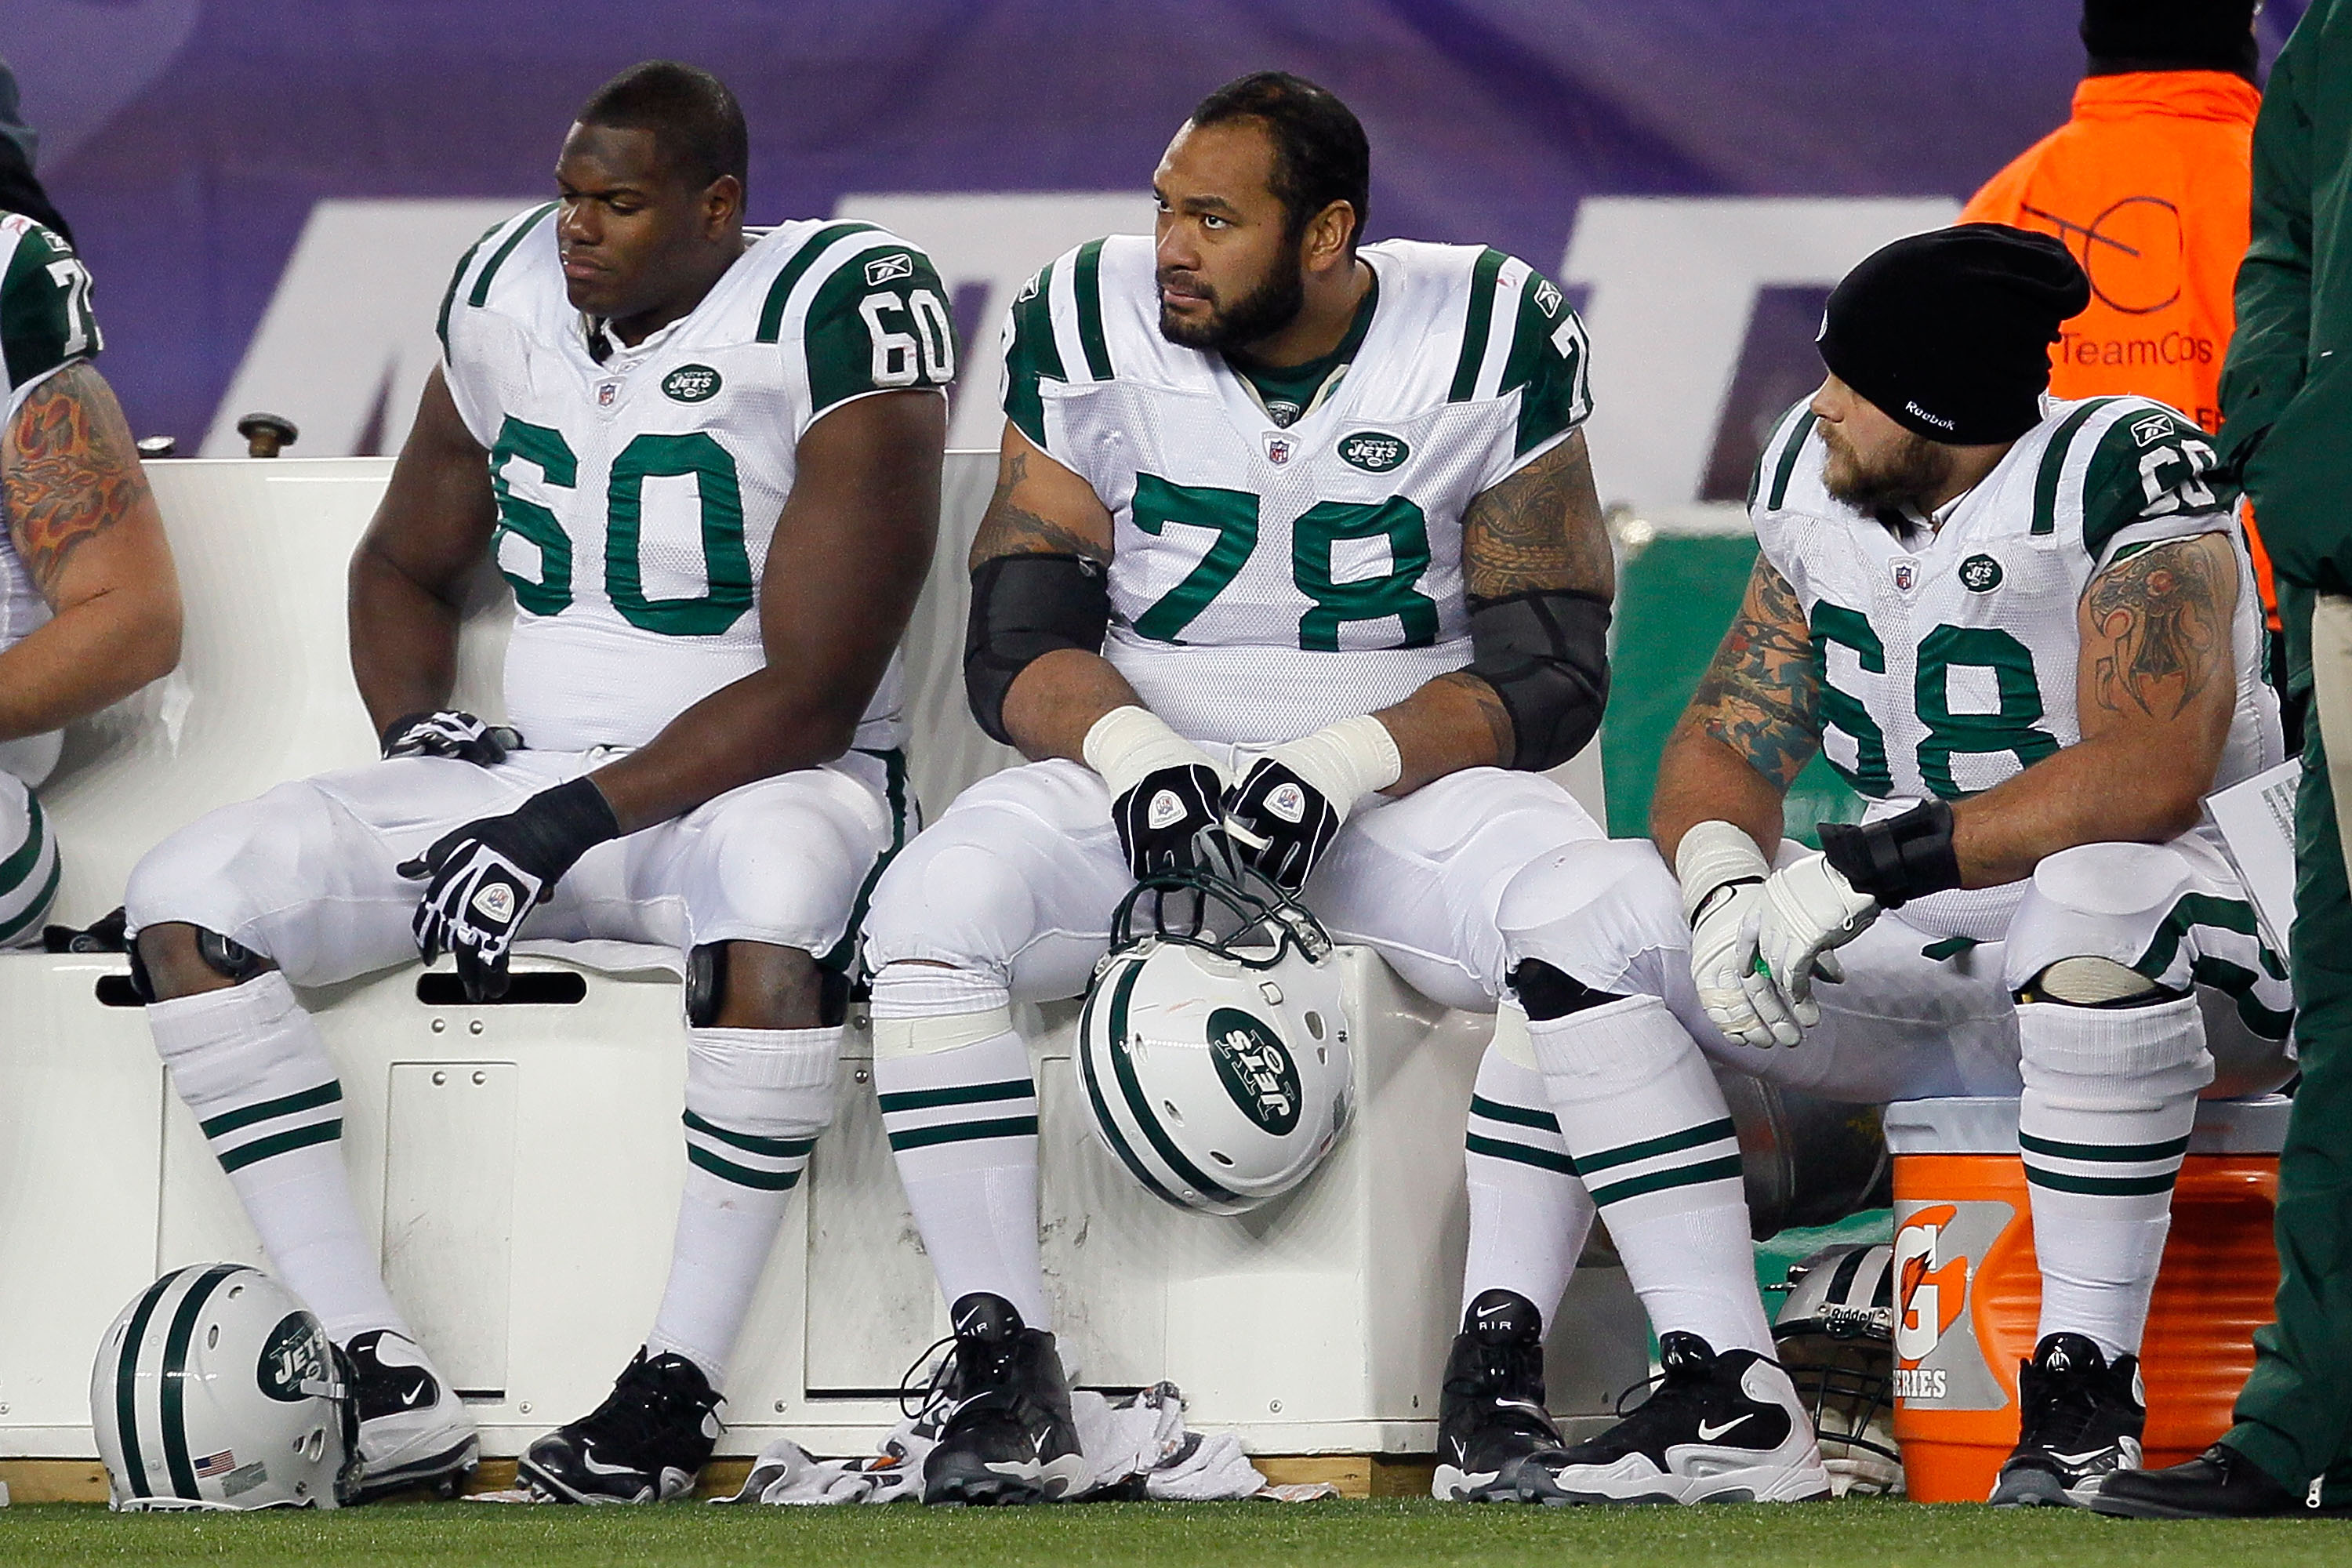 FOXBORO, MA - DECEMBER 06:  (L-R) D'Brickashaw Ferguson #60, Wayne Hunter #78 and Matt Slauson #68 of the New York Jets look on dejceted late in the fourth quarter against the New England Patriots at Gillette Stadium on December 6, 2010 in Foxboro, Massac